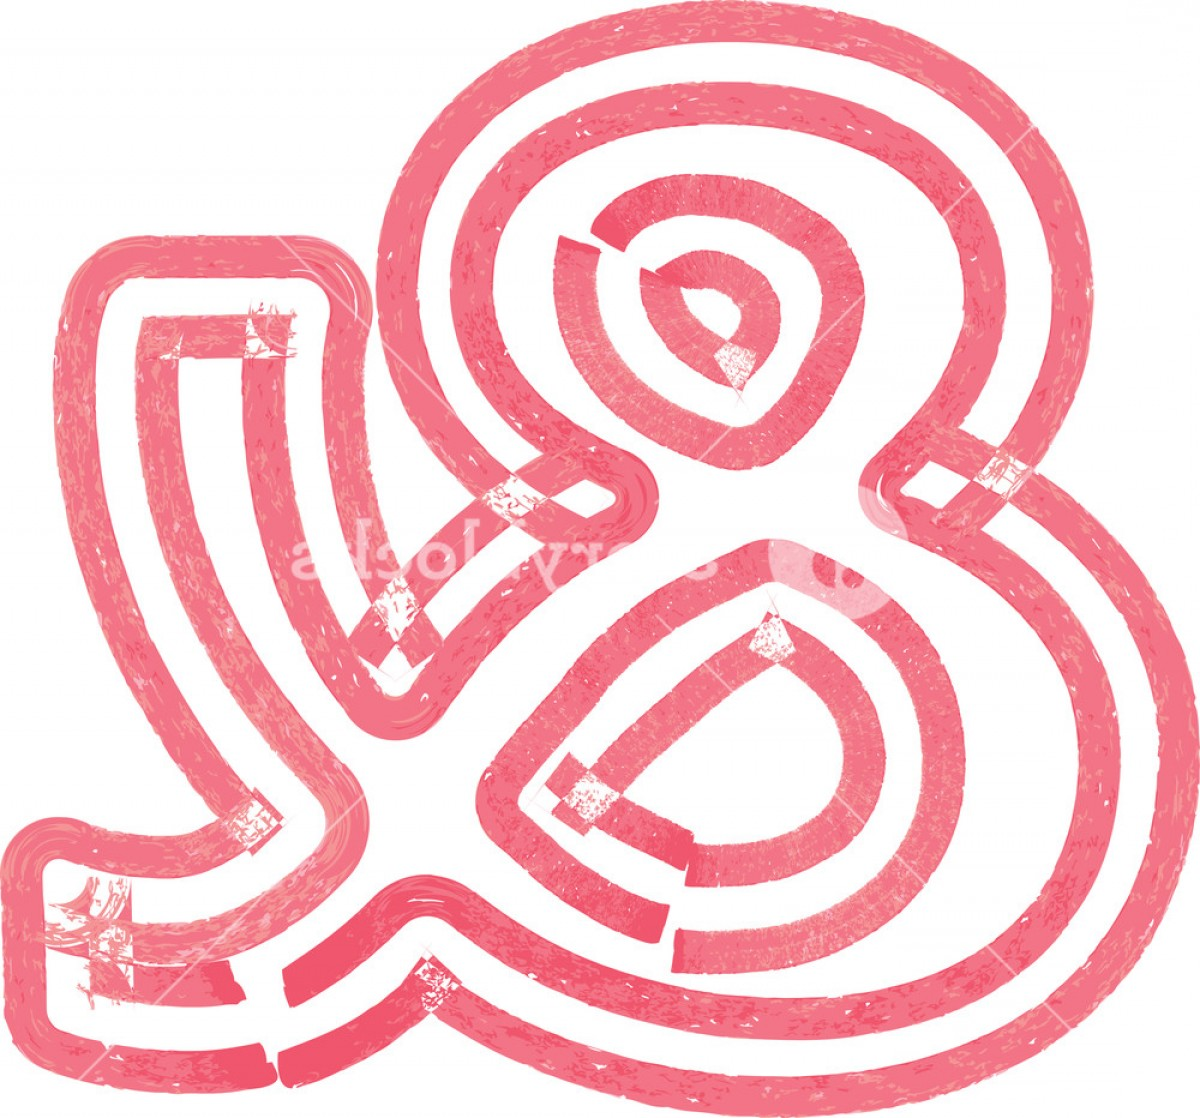 Ampersand Symbol Vector: Abstract Ampersand Symbol Made With Red Marker Vector Illustration Hiwvawprcejcoo